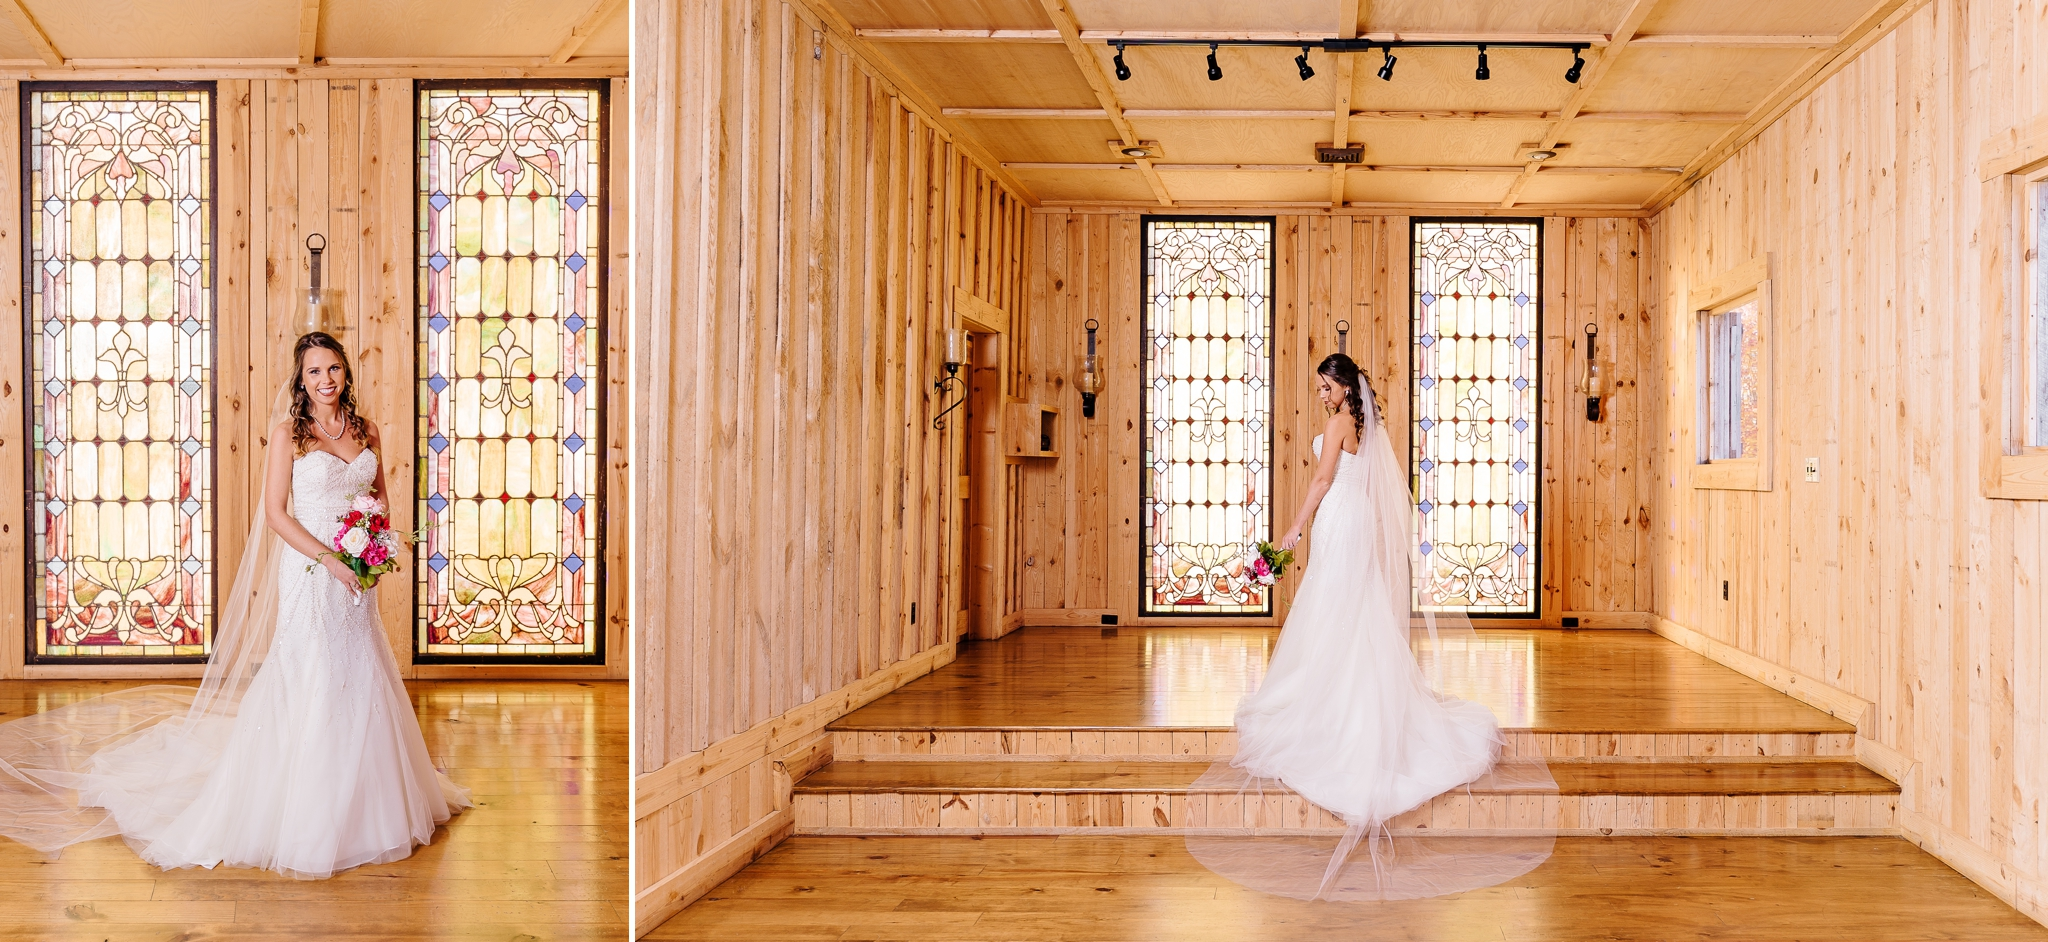 Bride_in_chapel_for_bridal_portraits_at_gentry_farms_in_virginia_by_jonathan_and_hannah_photography